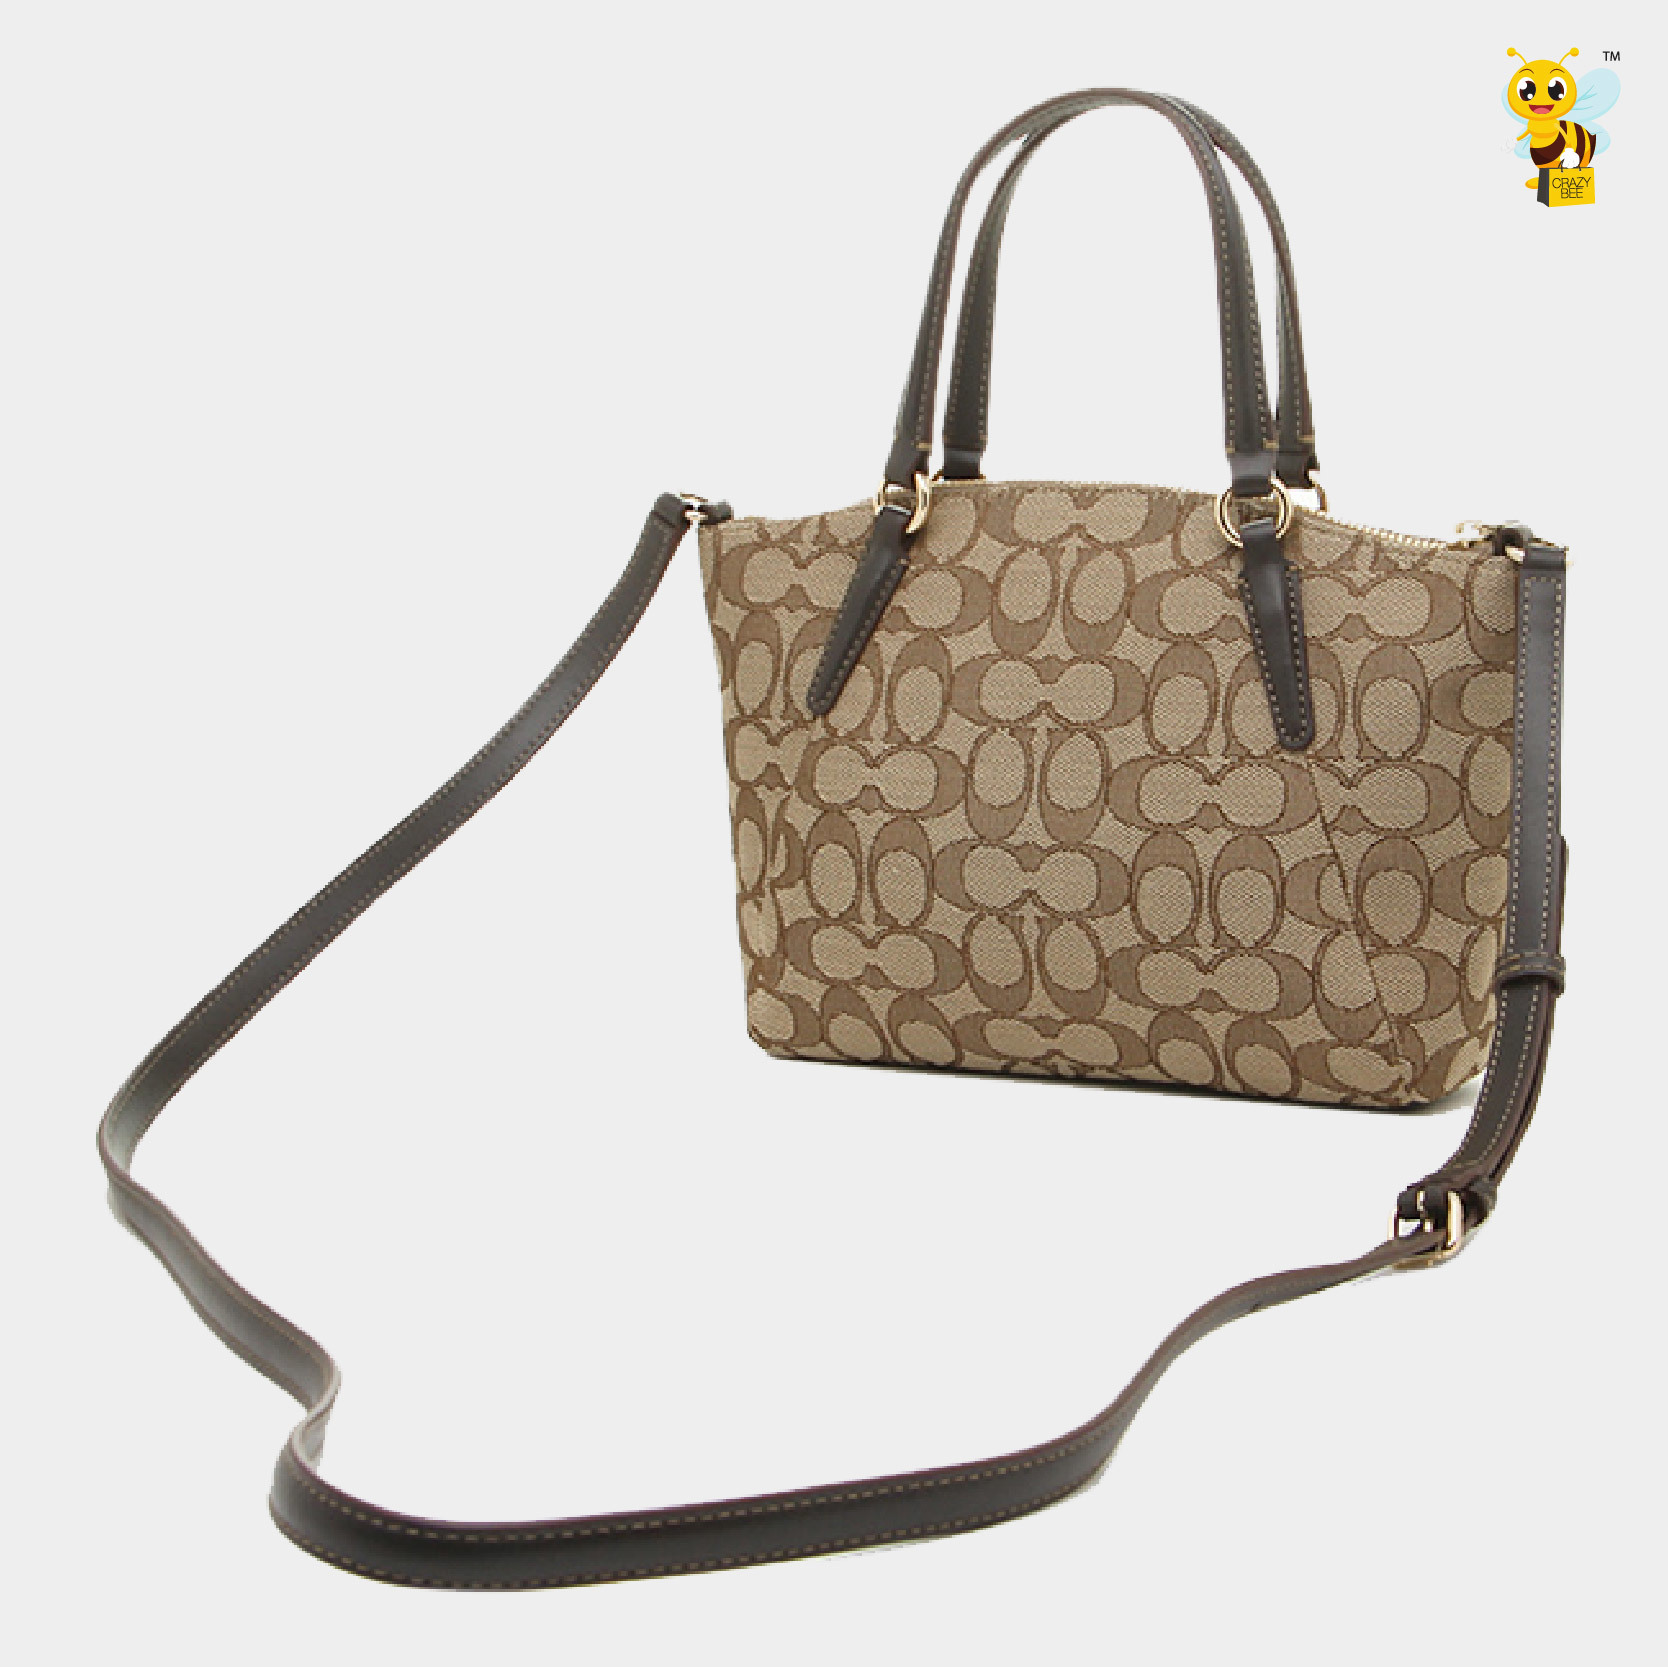 6e76728b0200 ... coupon code for coach f57830 mini kelsey satchel in outline signature  brown 9b3b5 d90b9 ...